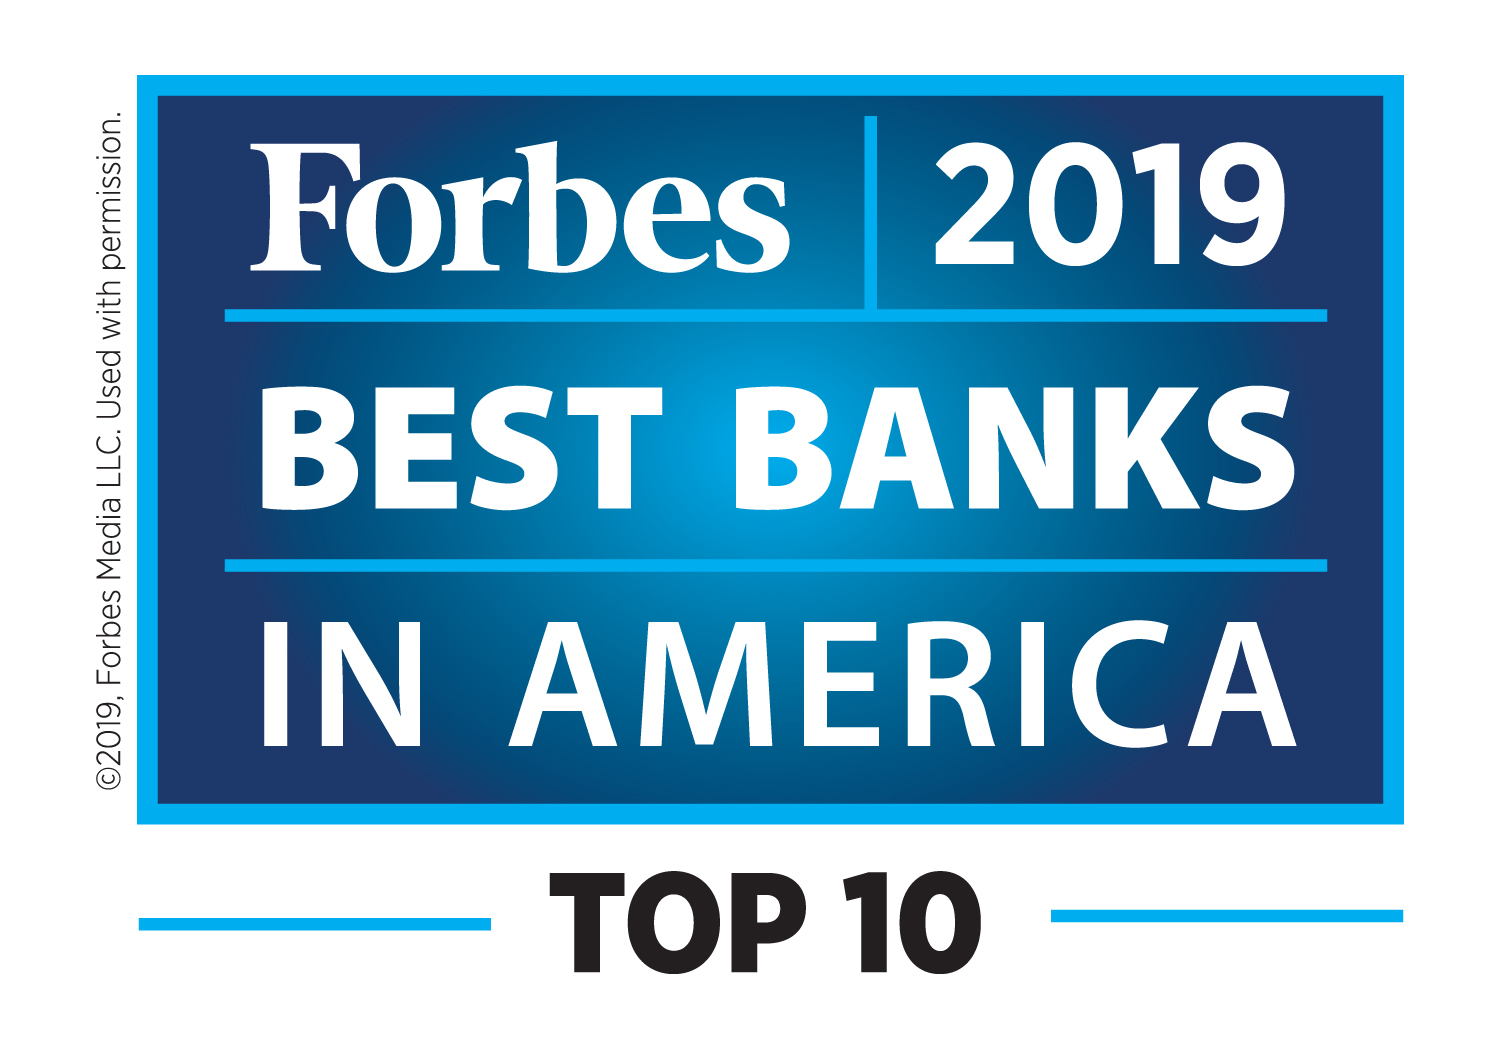 Cathay General Bancorp is ranked #10 on Forbes' 2019 America's Best Banks list.